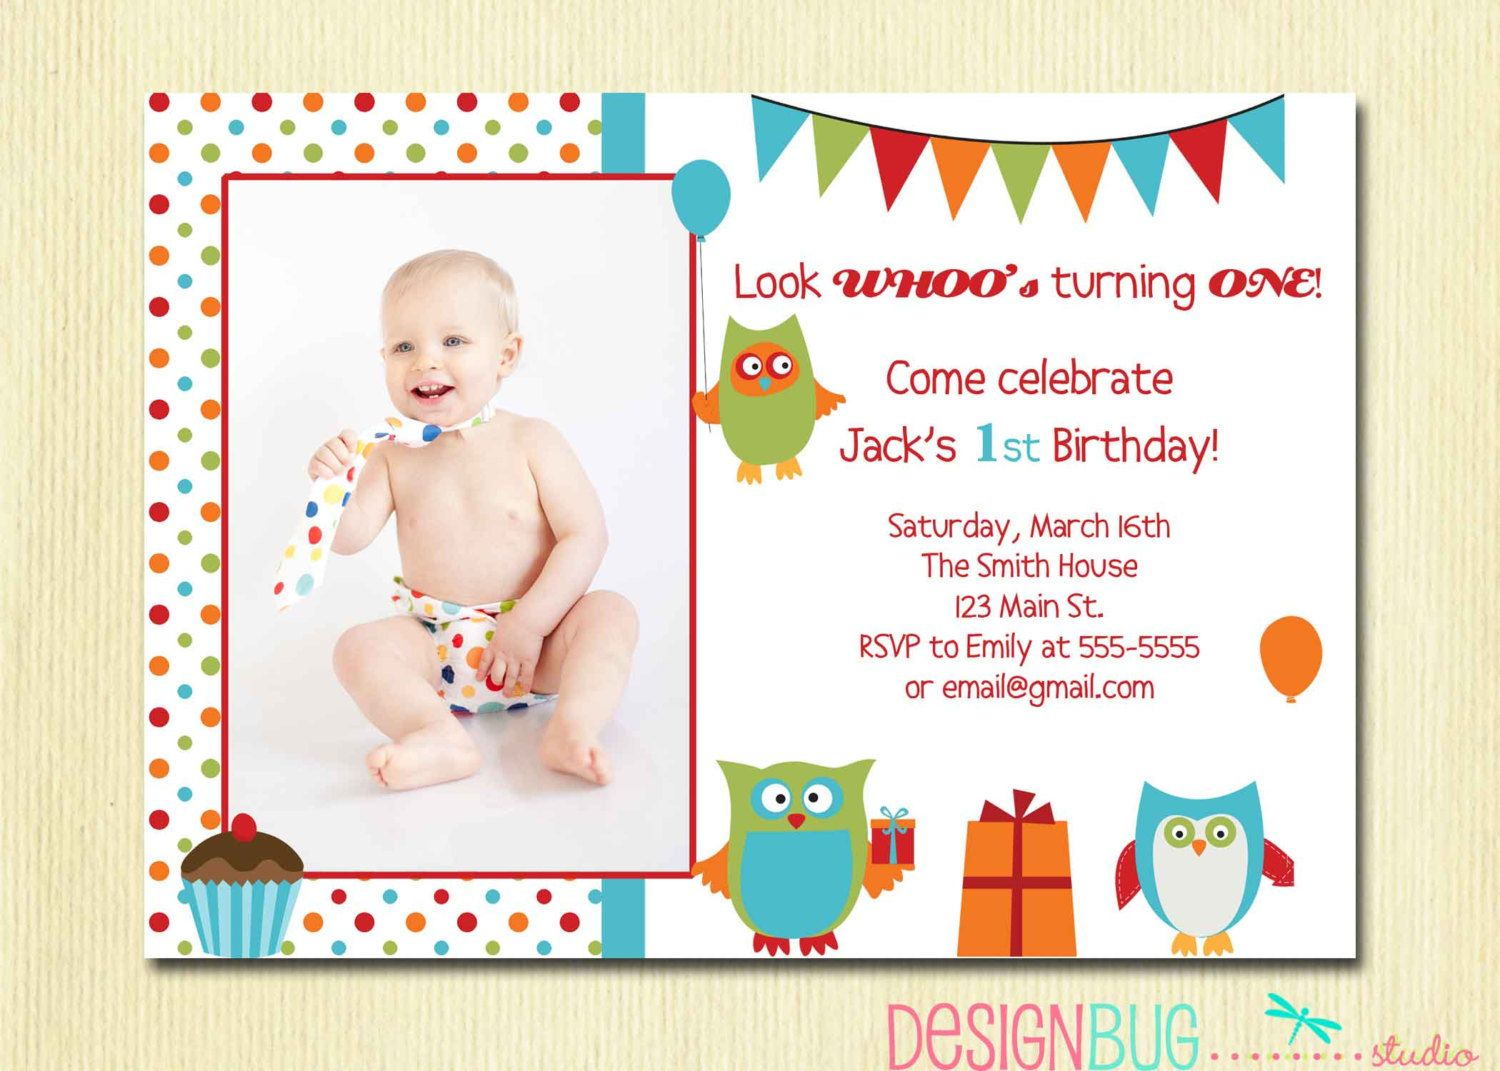 birthday card message for 3 year old boy ; 7eb15030d1912620c3cd5962b58576ce